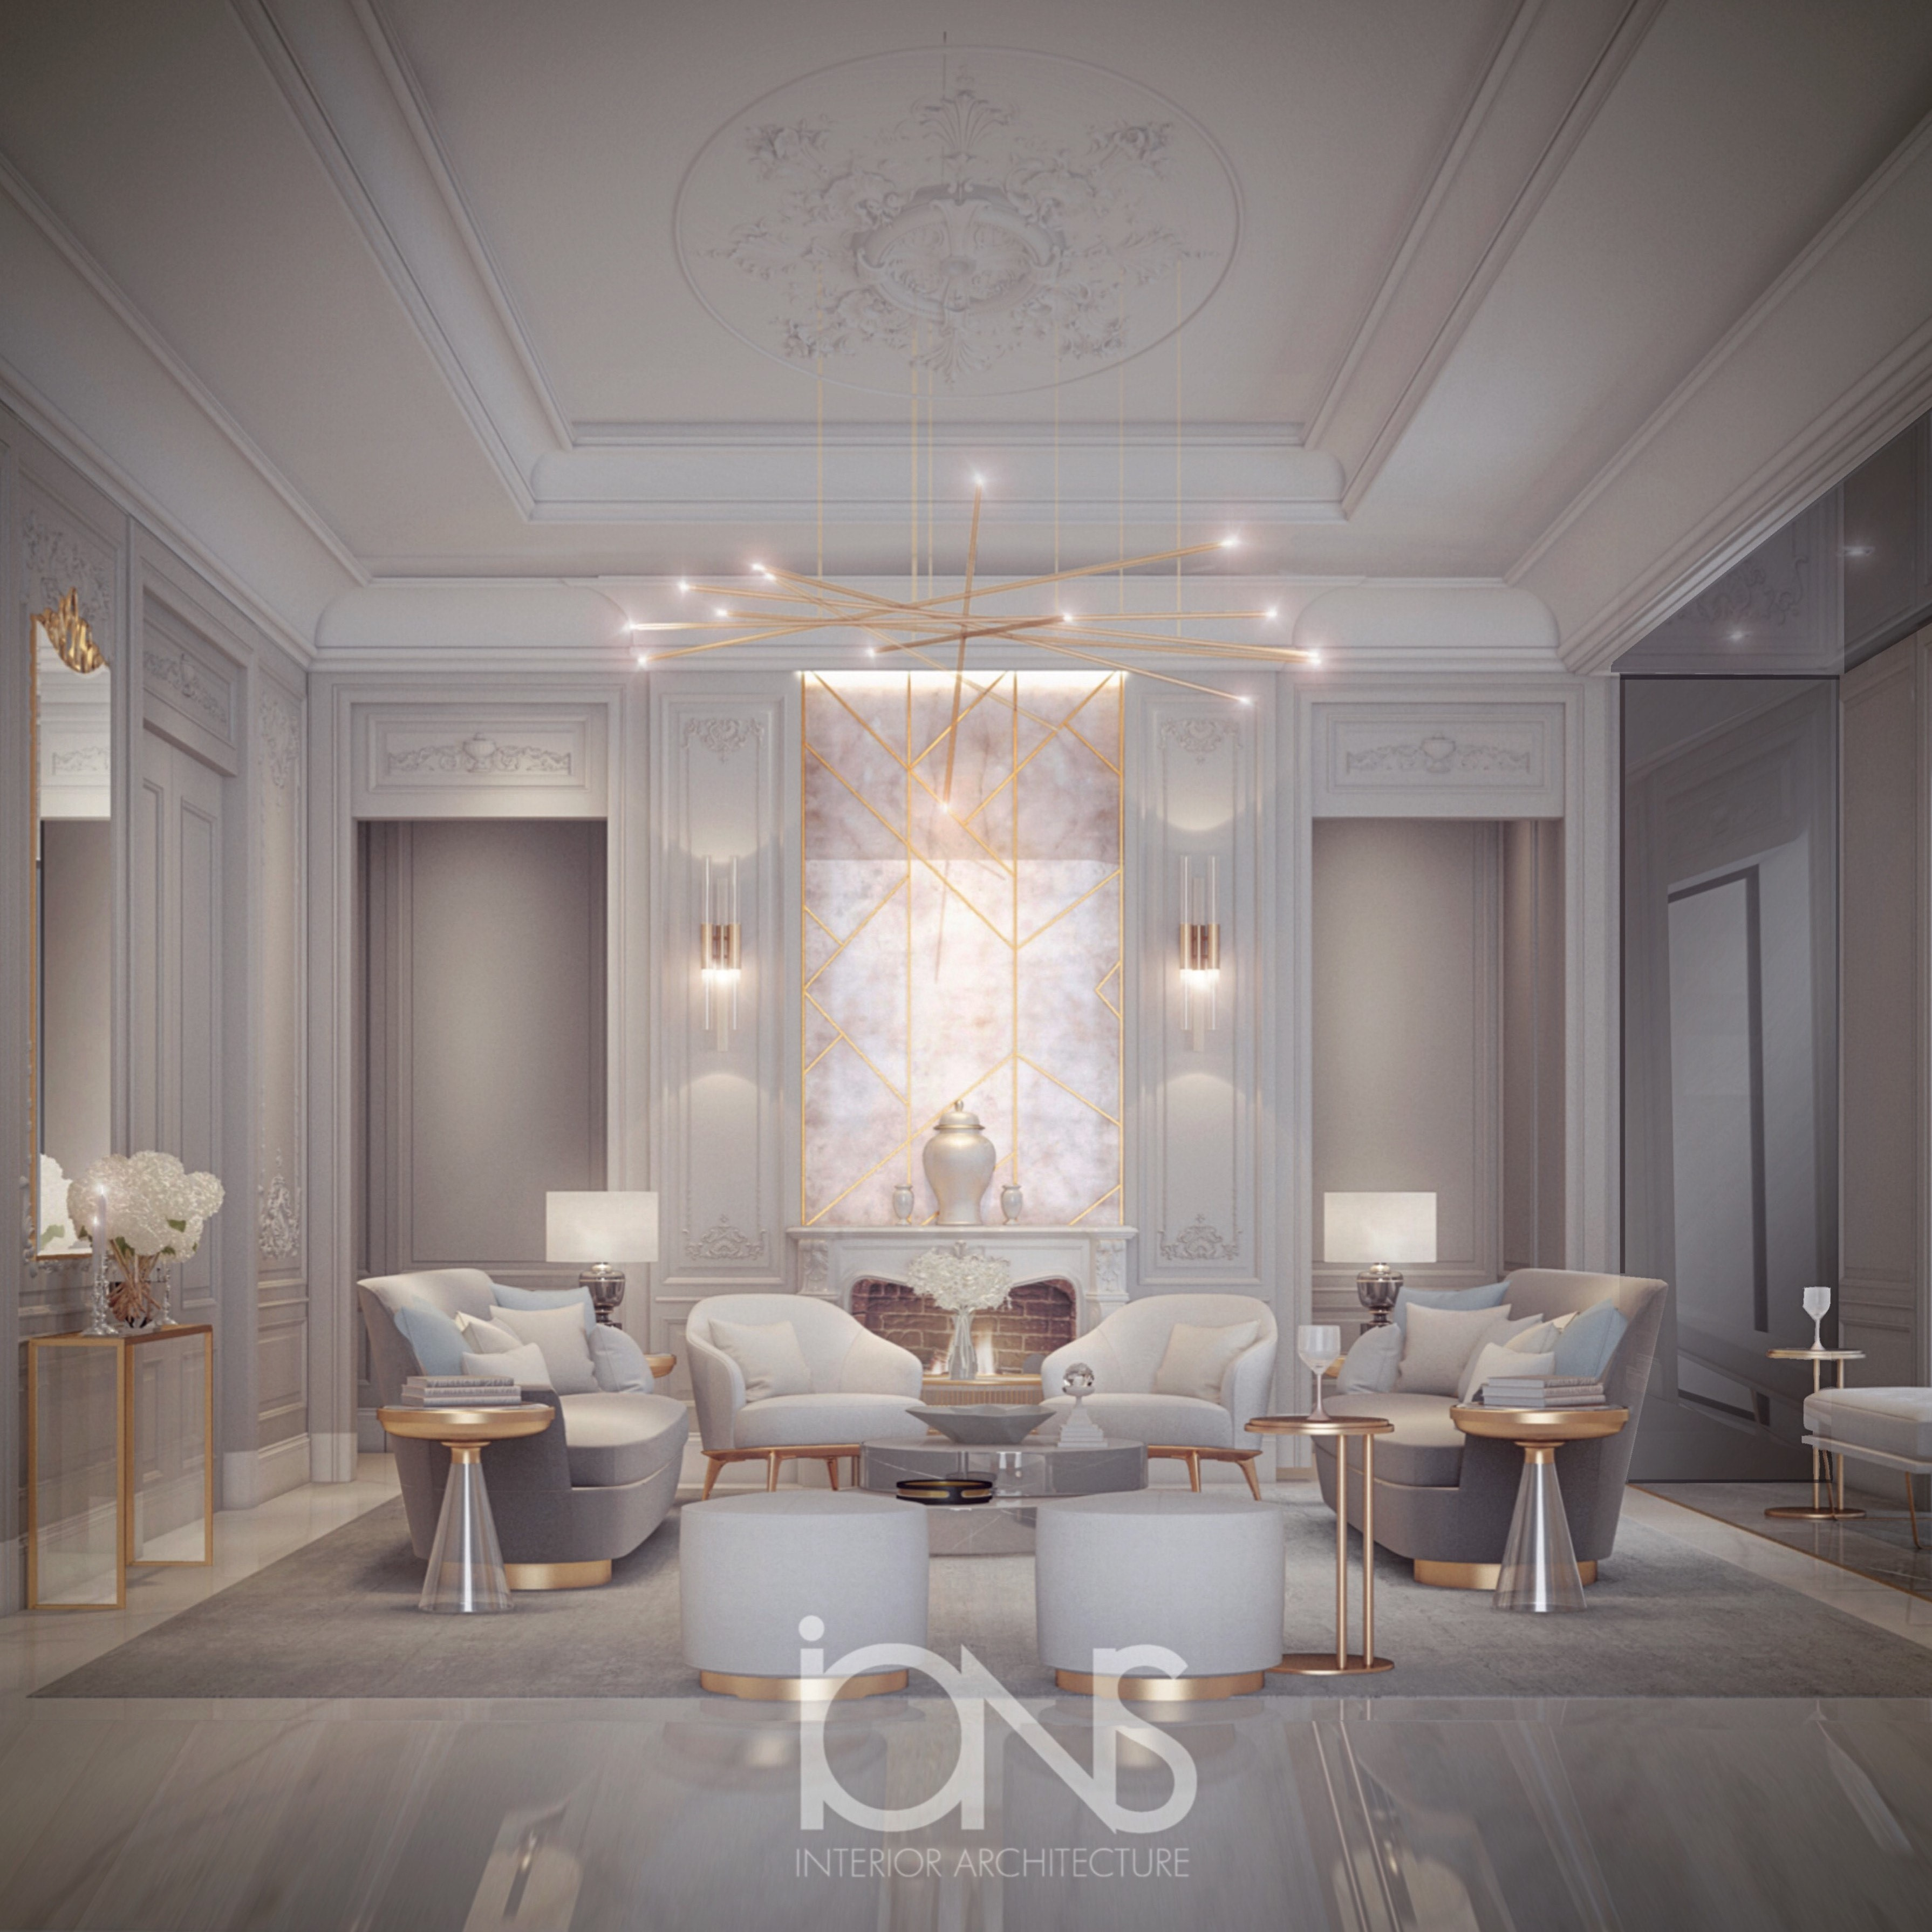 Ions Interior Design Dubai living room design in transitional style | ions design